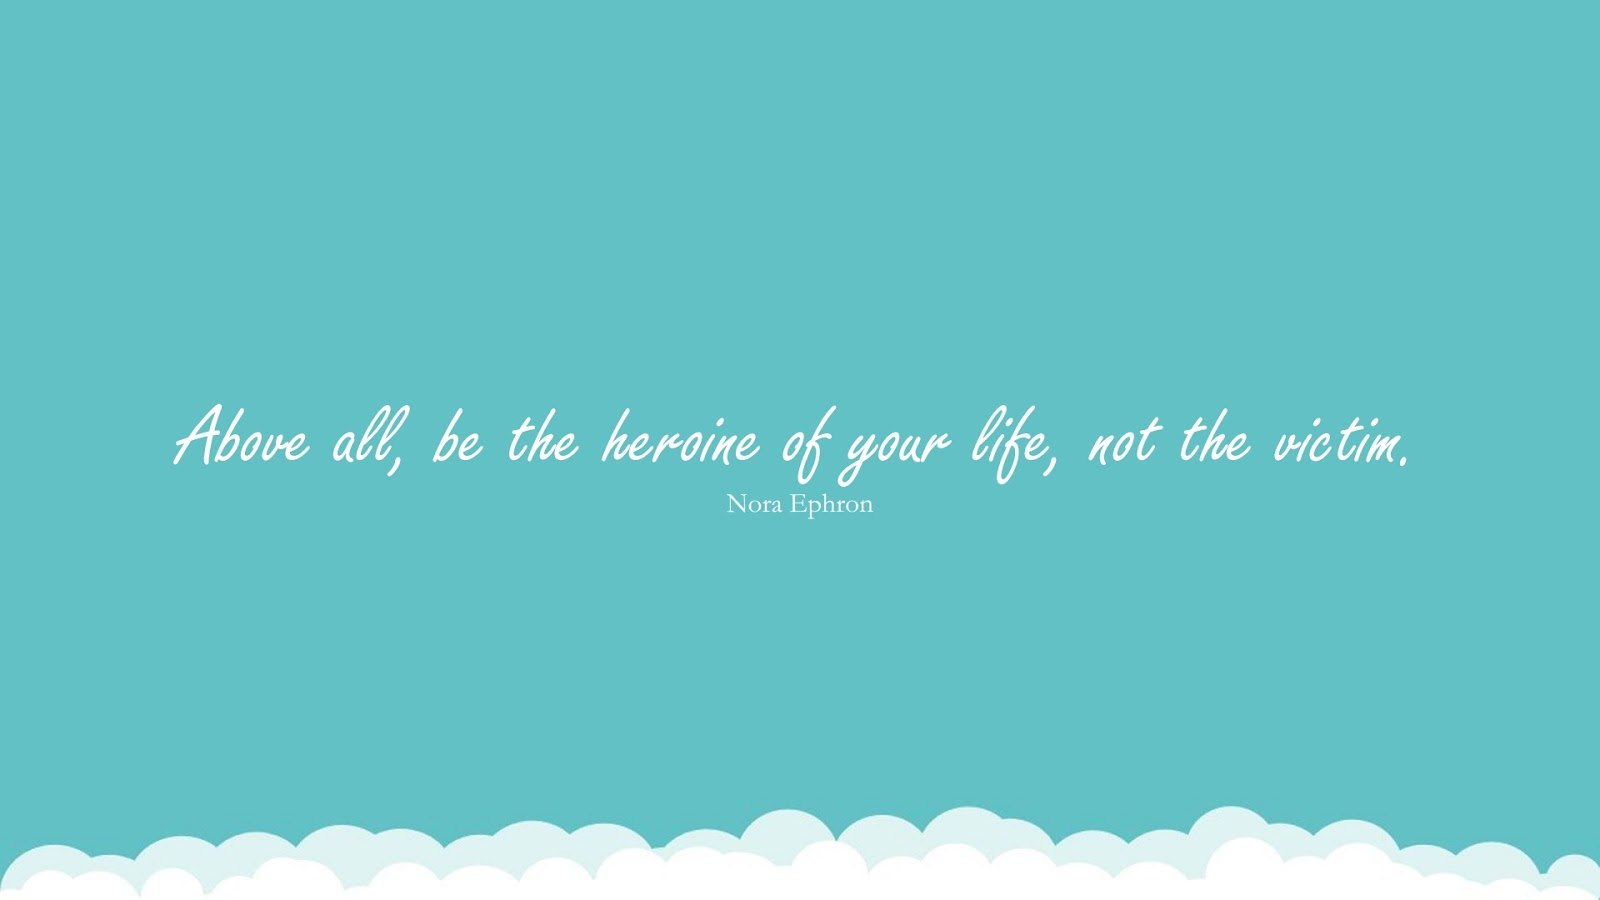 Above all, be the heroine of your life, not the victim. (Nora Ephron);  #EncouragingQuotes